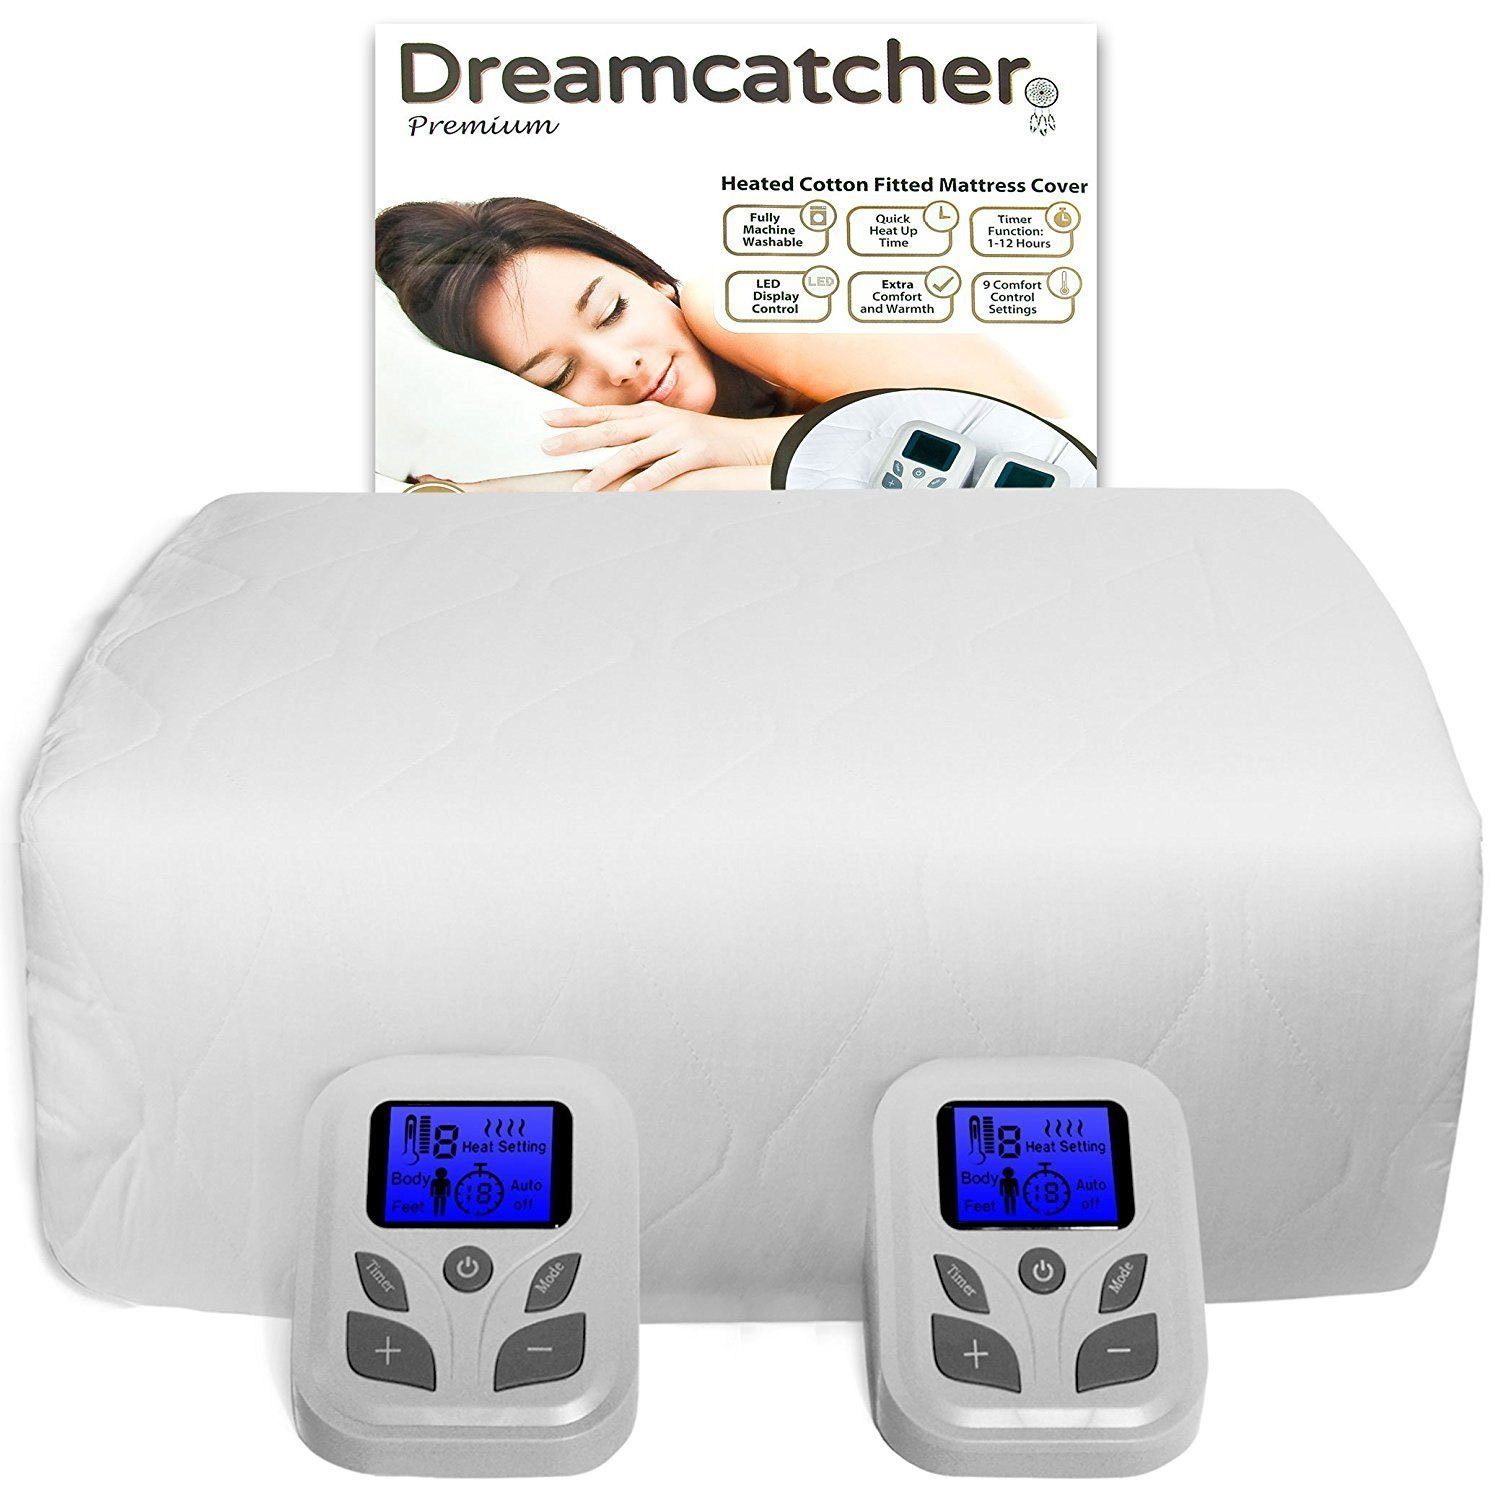 Dreamcatcher Ultra Soft Double Electric Blanket Dual Control 193 x 137cm, 40cm Elasticated Skirt for deep mattresses, Timer, 9 Comfort Settings, Machine Washable, Body & Feet Heating Function